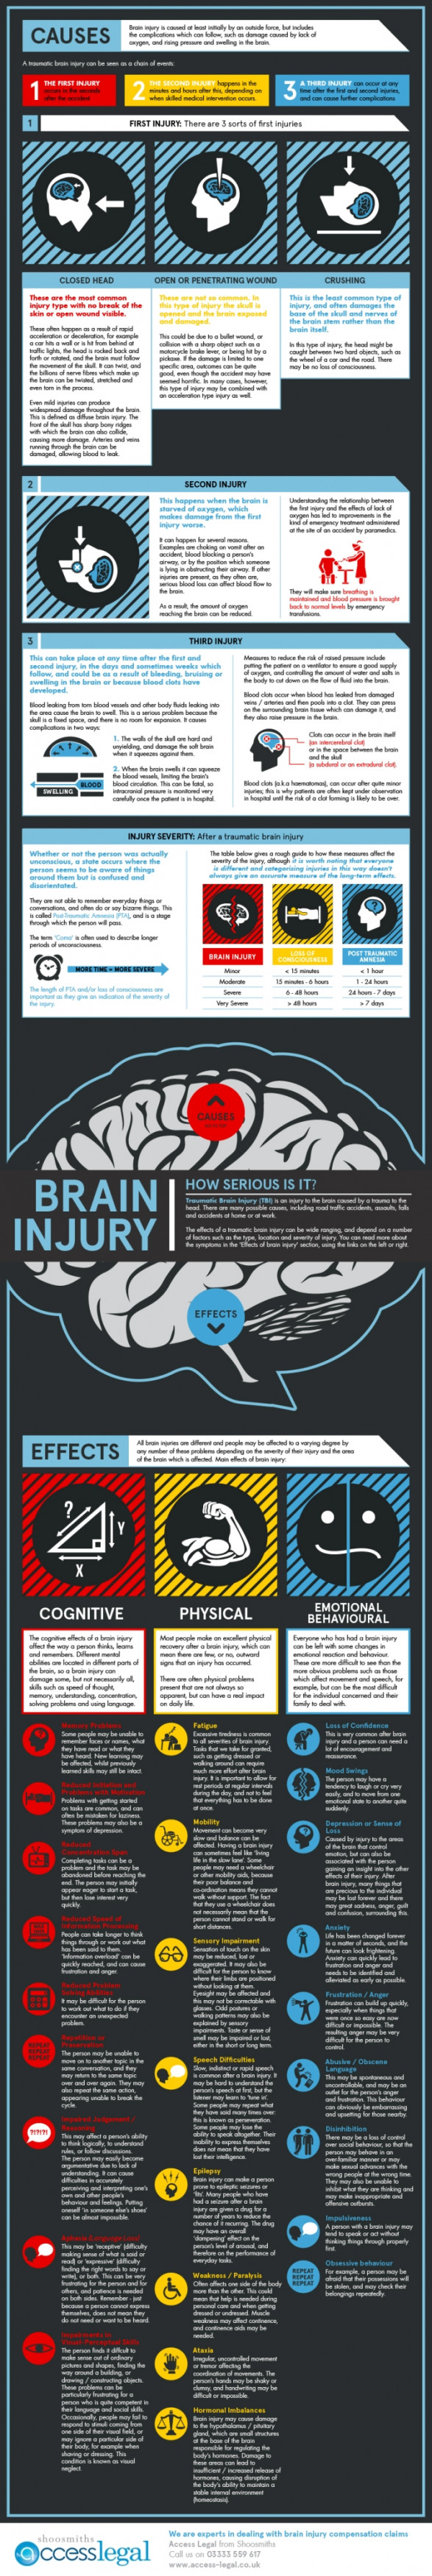 Brain Injury - How Serious Is It?